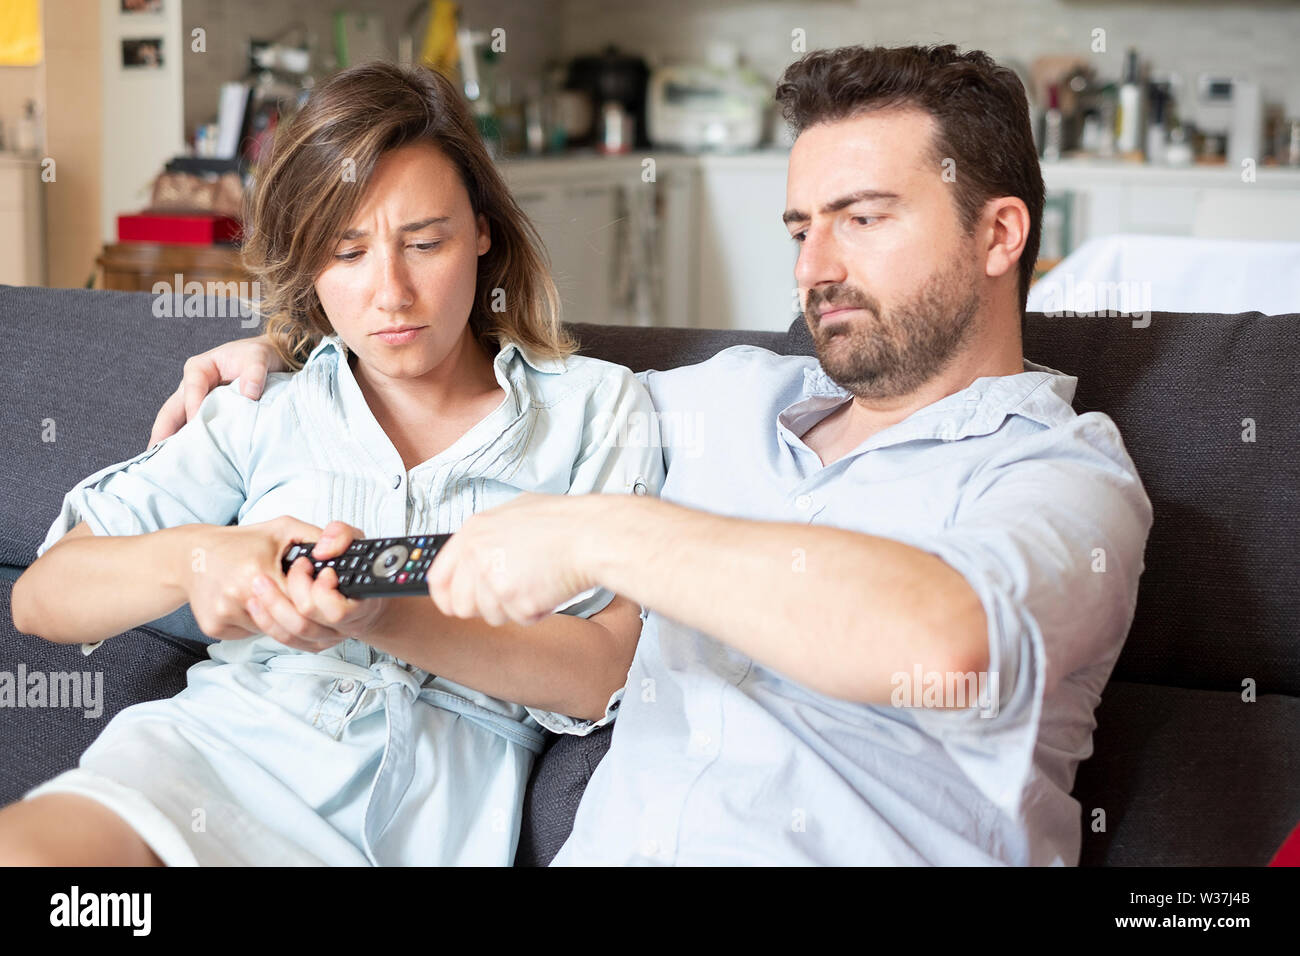 Angry couple fighting for the remote control - Stock Image